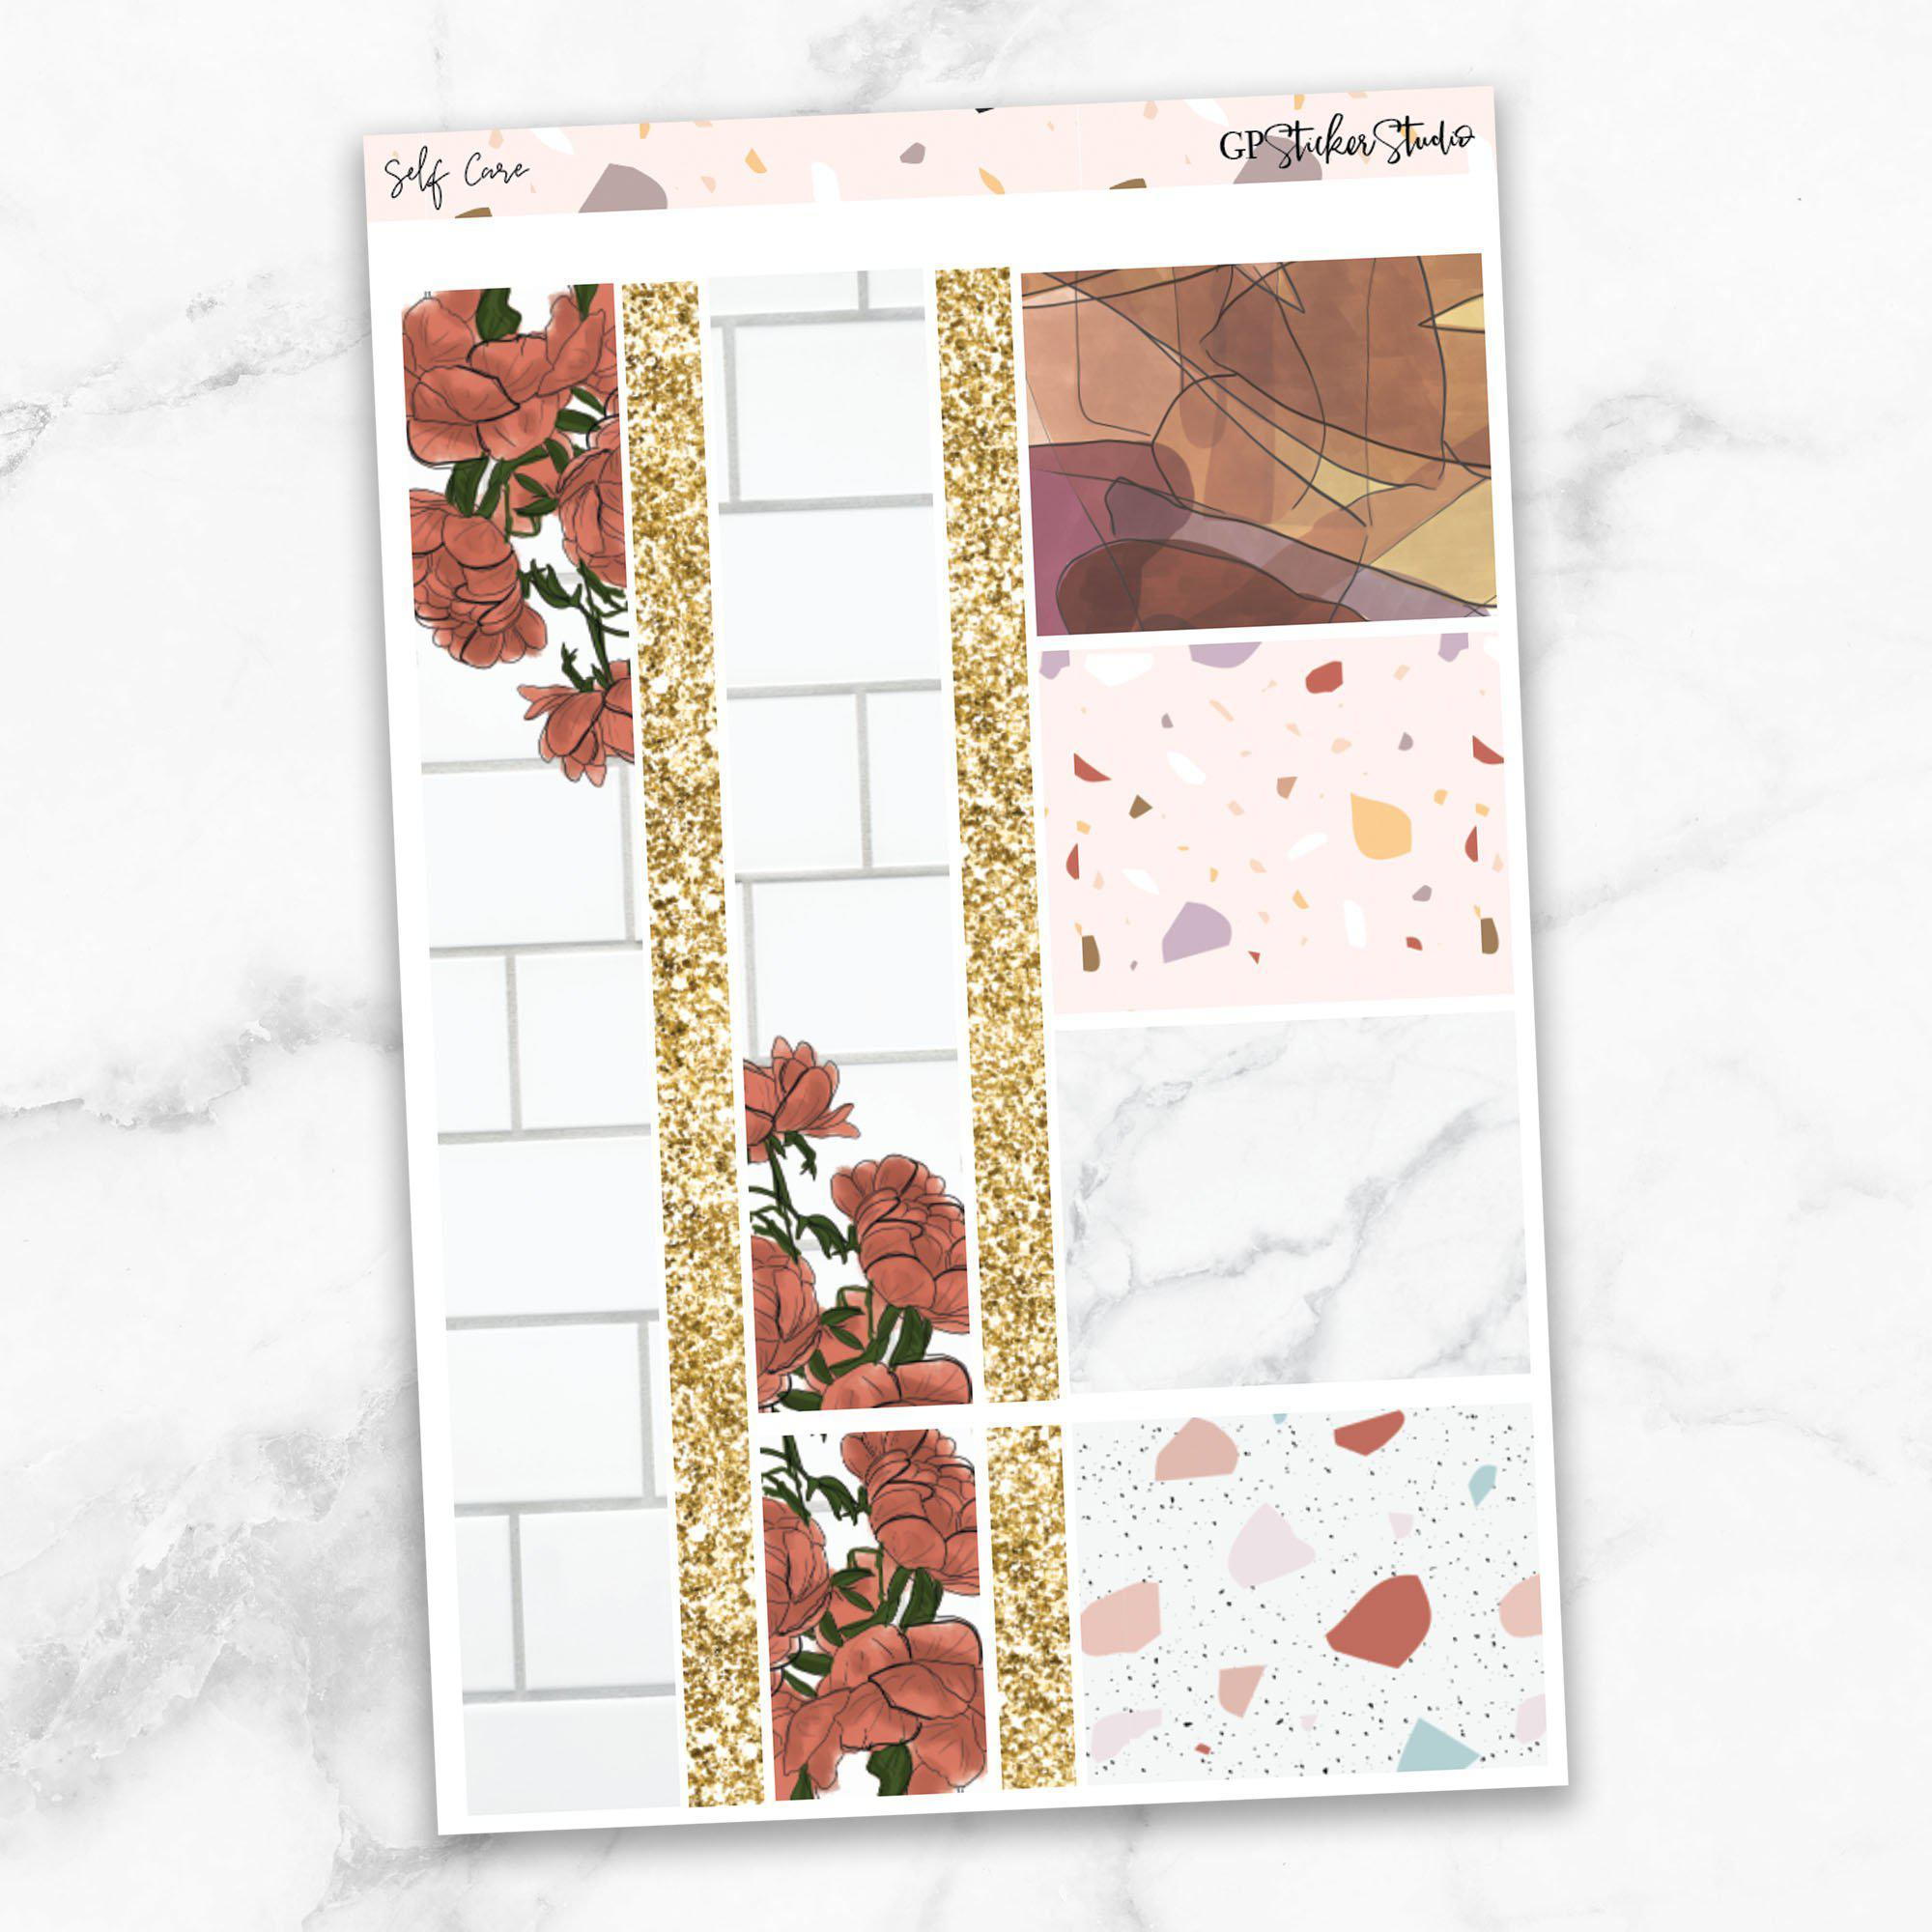 SELF CARE Washi Sheet Stickers-The GP Studio